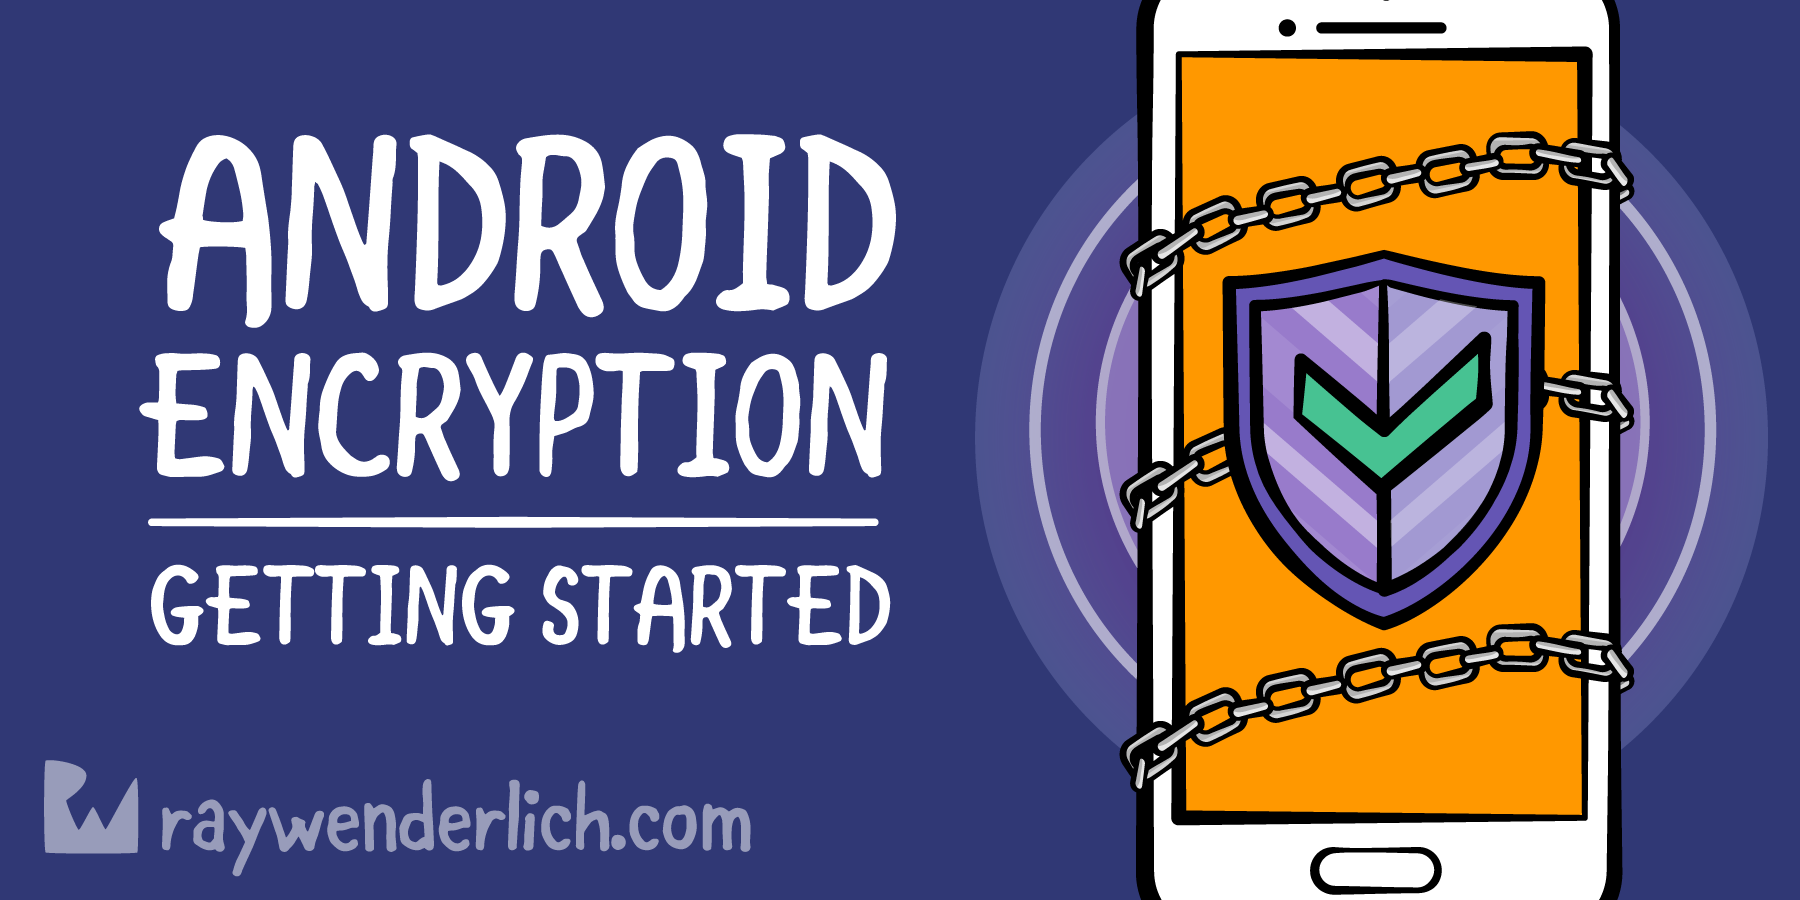 Encryption Tutorial For Android: Getting Started | raywenderlich com